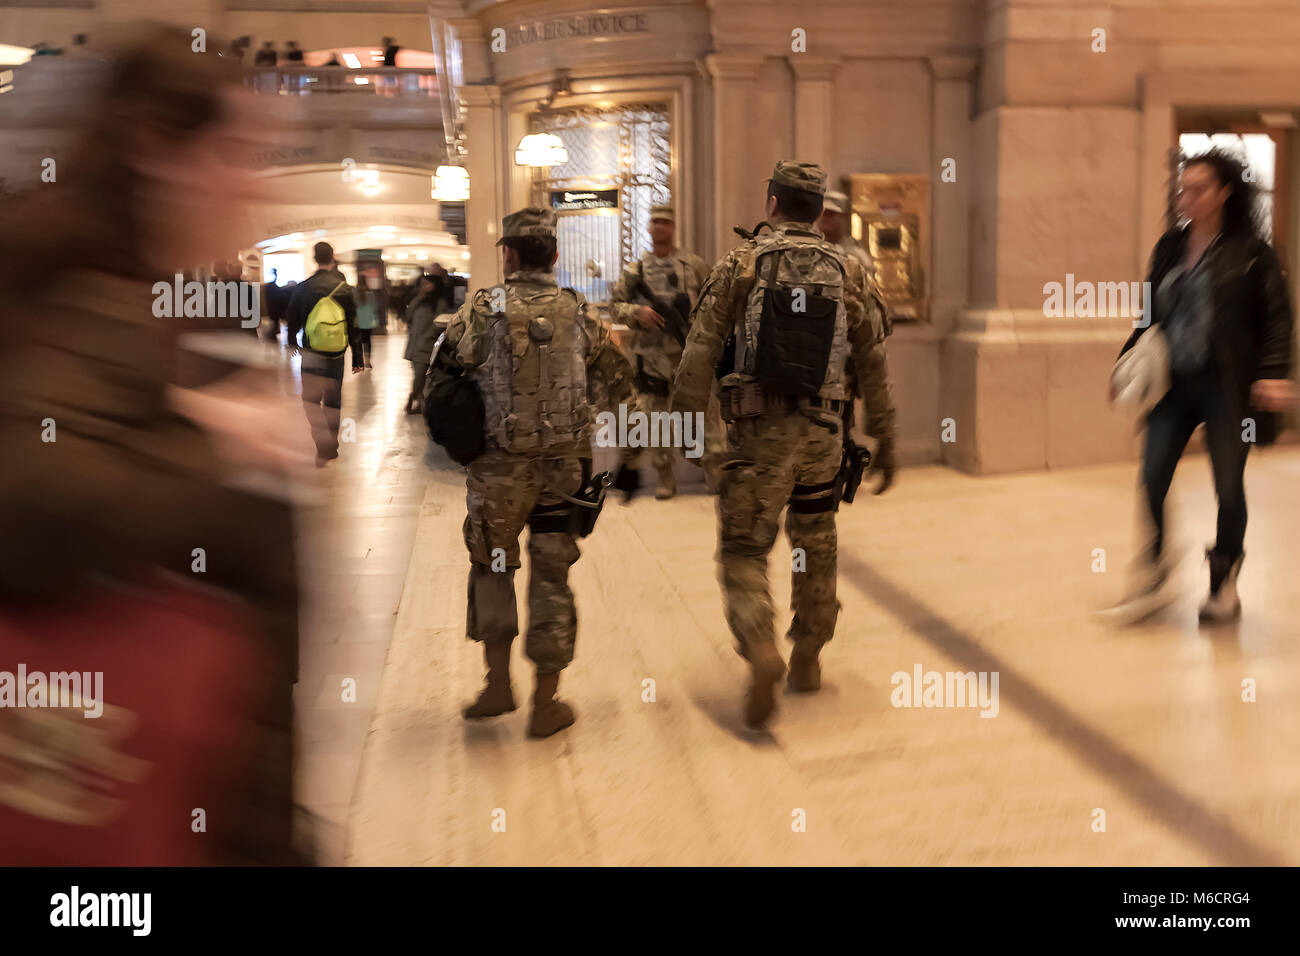 Army National Guard officers patrolling Grand Central Station, New York, NY,  USA. - Stock Image